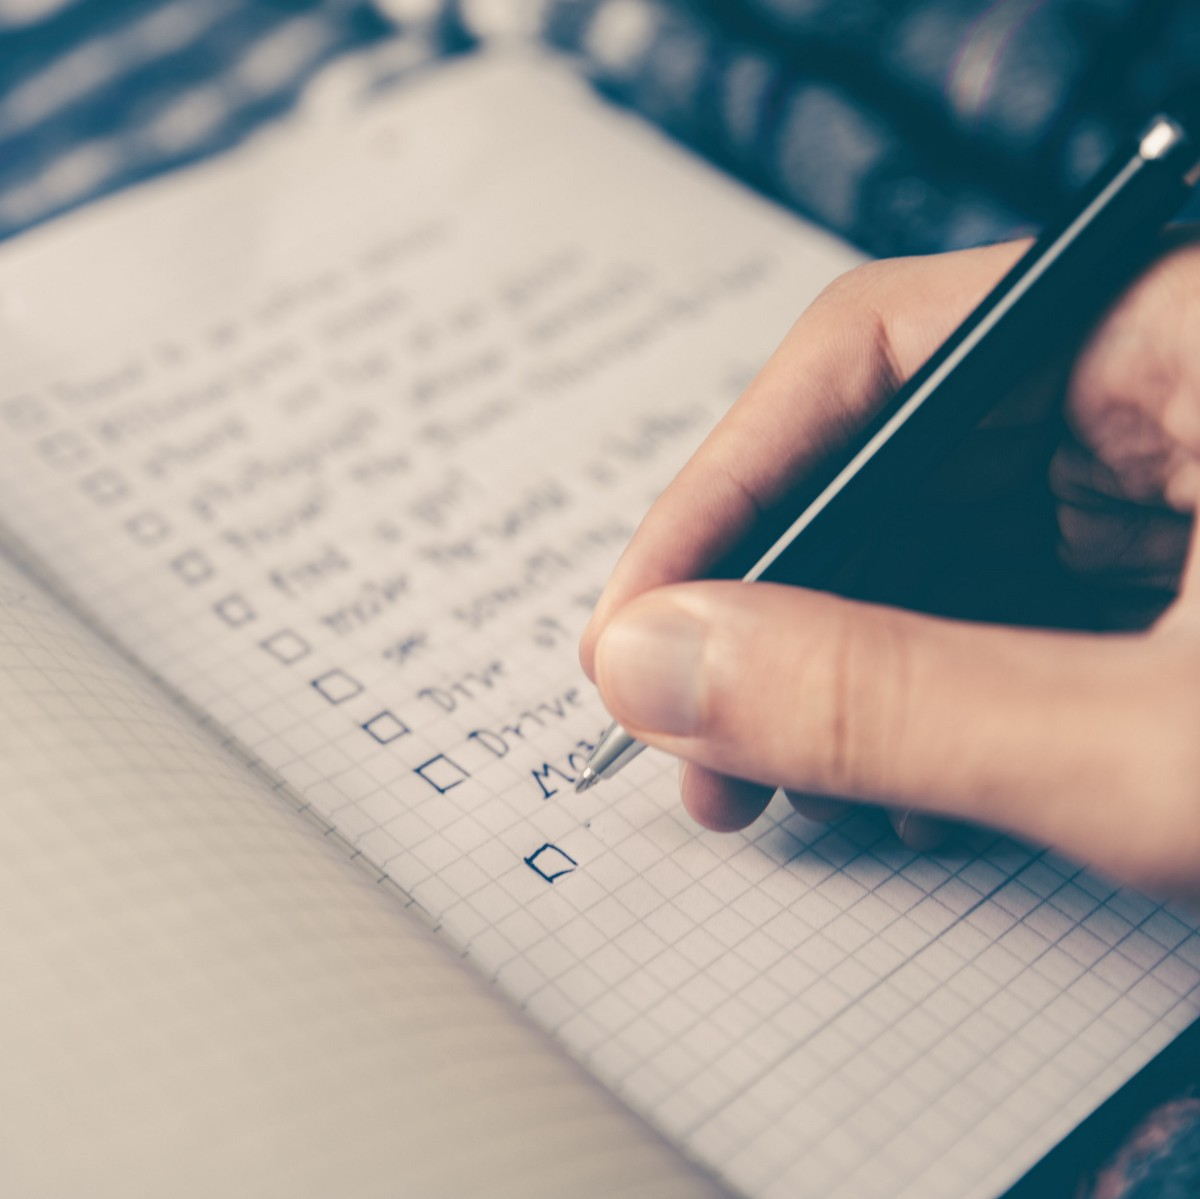 Move Tasks From Your To-Do List to an 'I Did' List